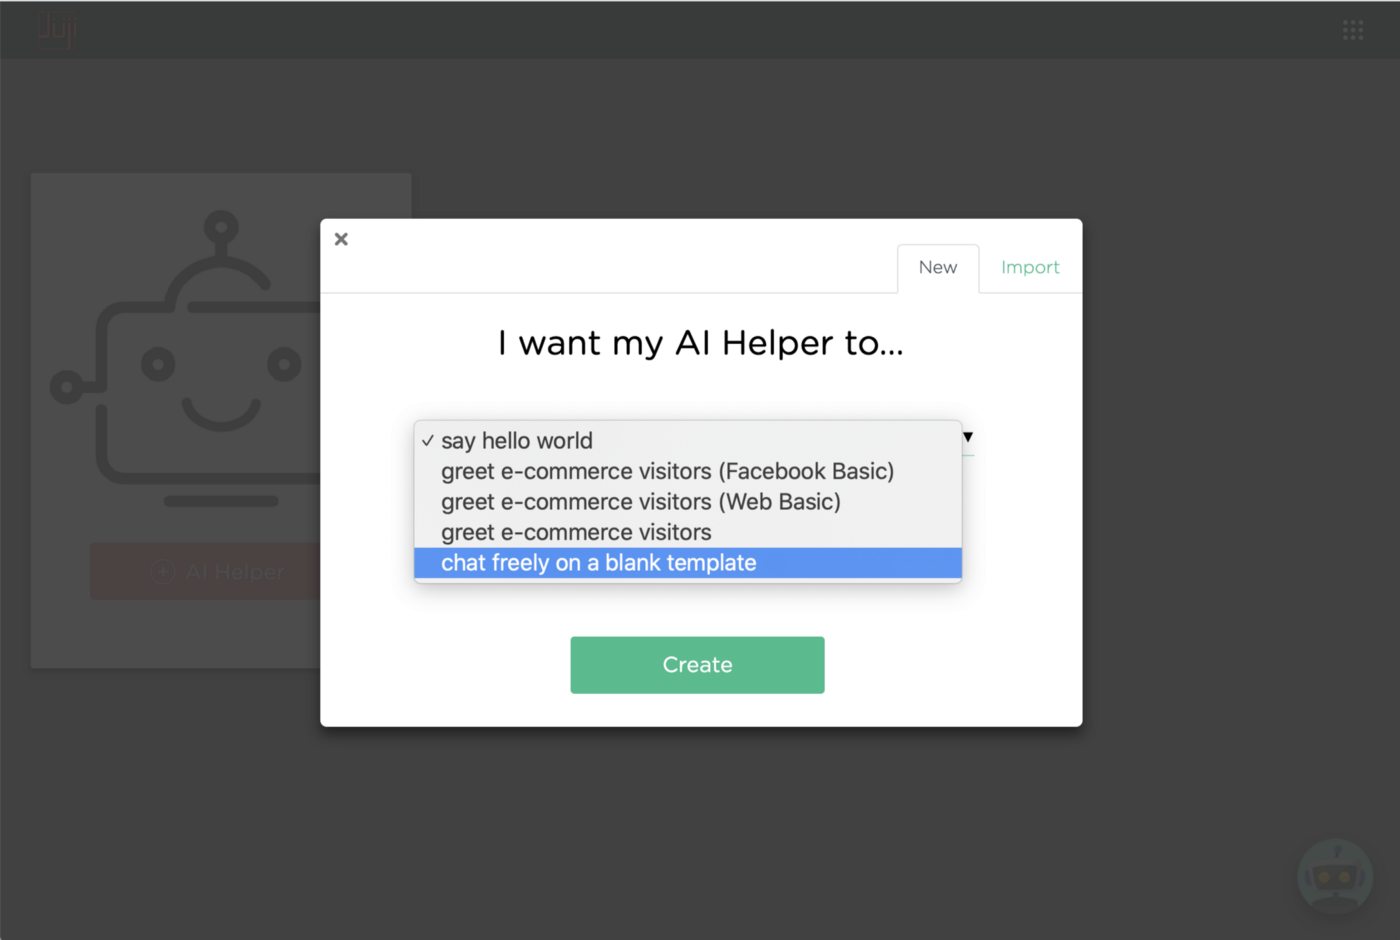 Create a new AI Helper and choose the blank template to start with